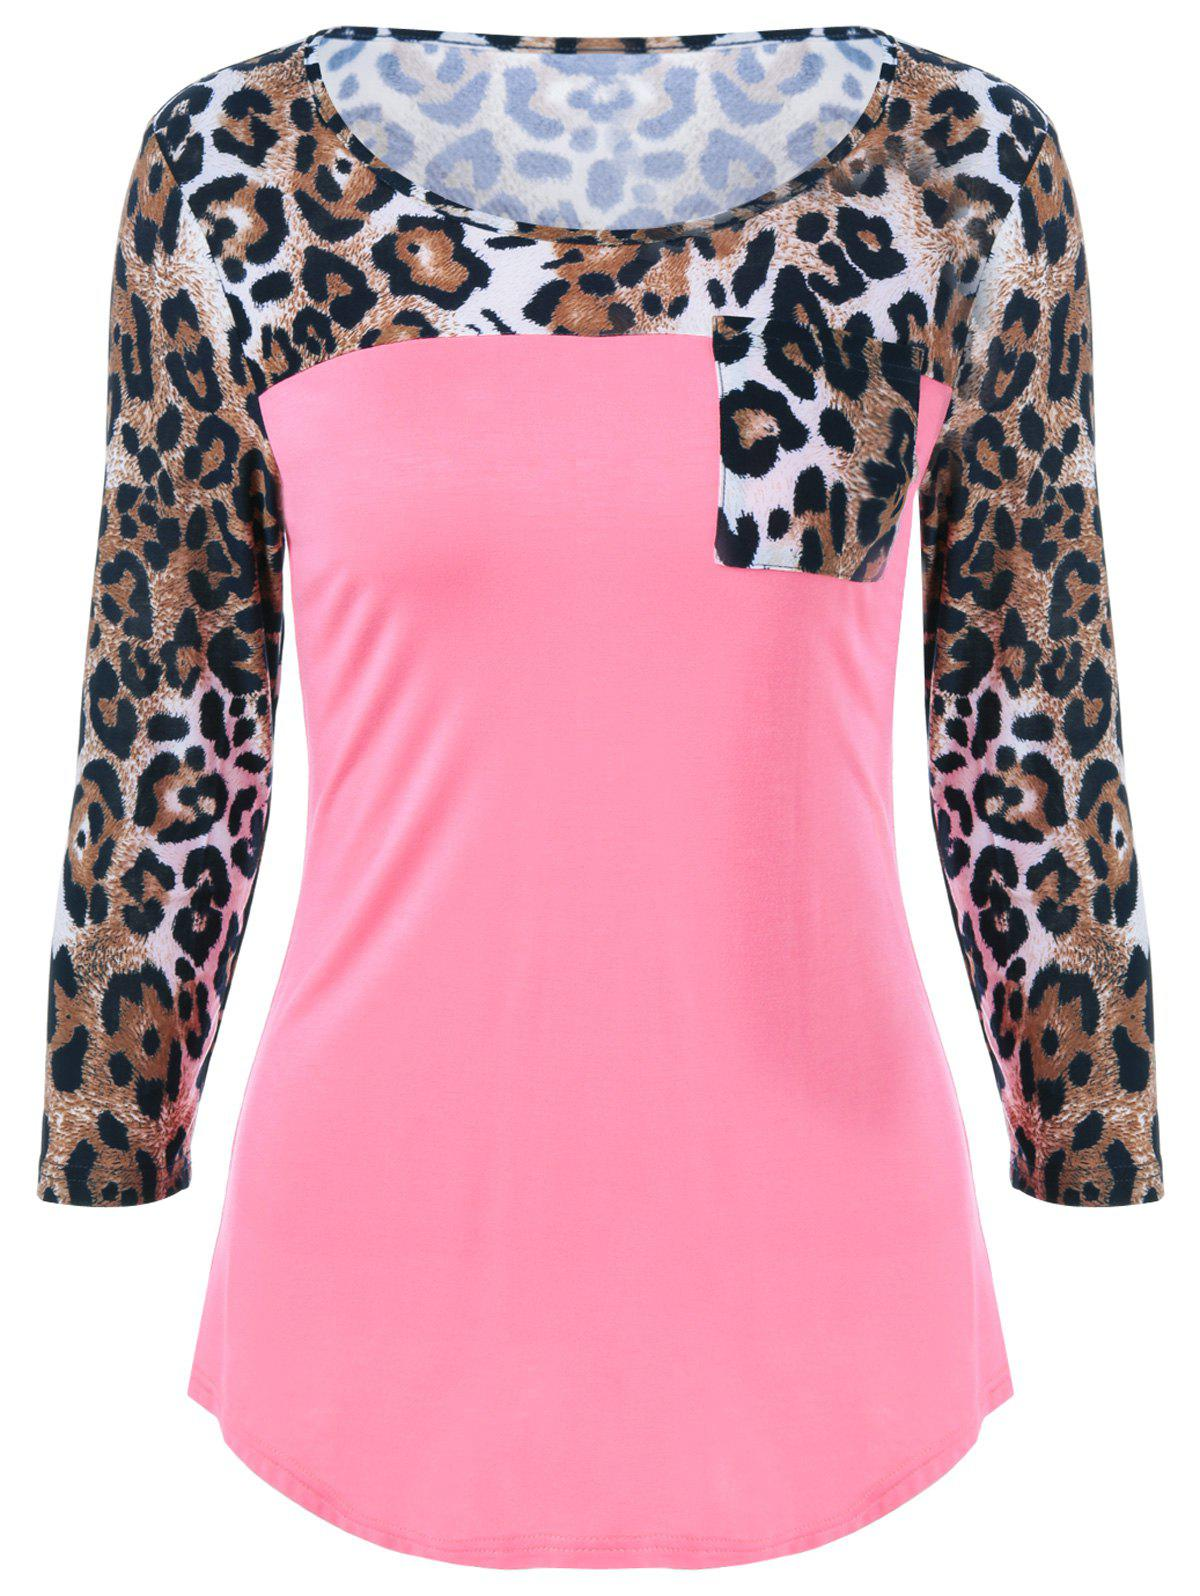 T-shirt simple Leopard de poche Imprimer - Rose Clair M